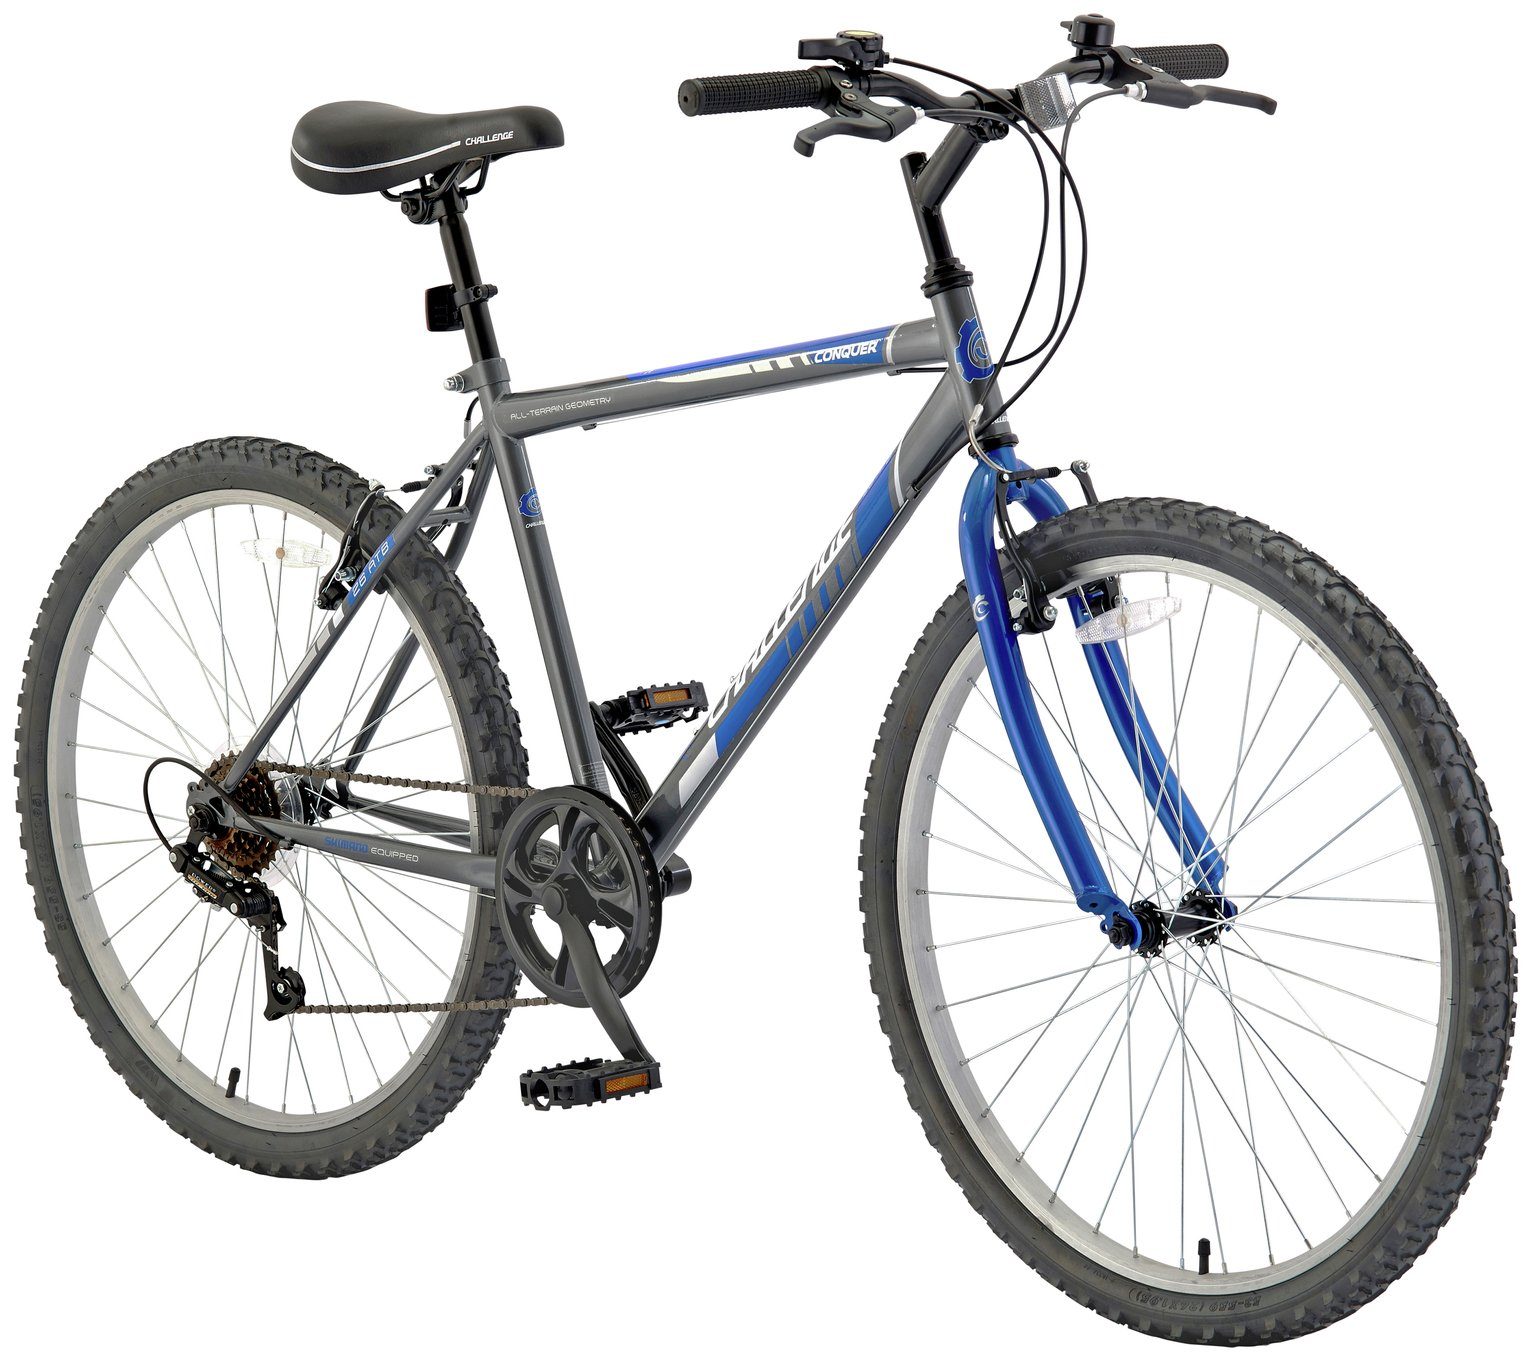 Image of Challenge Conquer Rigid Mountain Bike